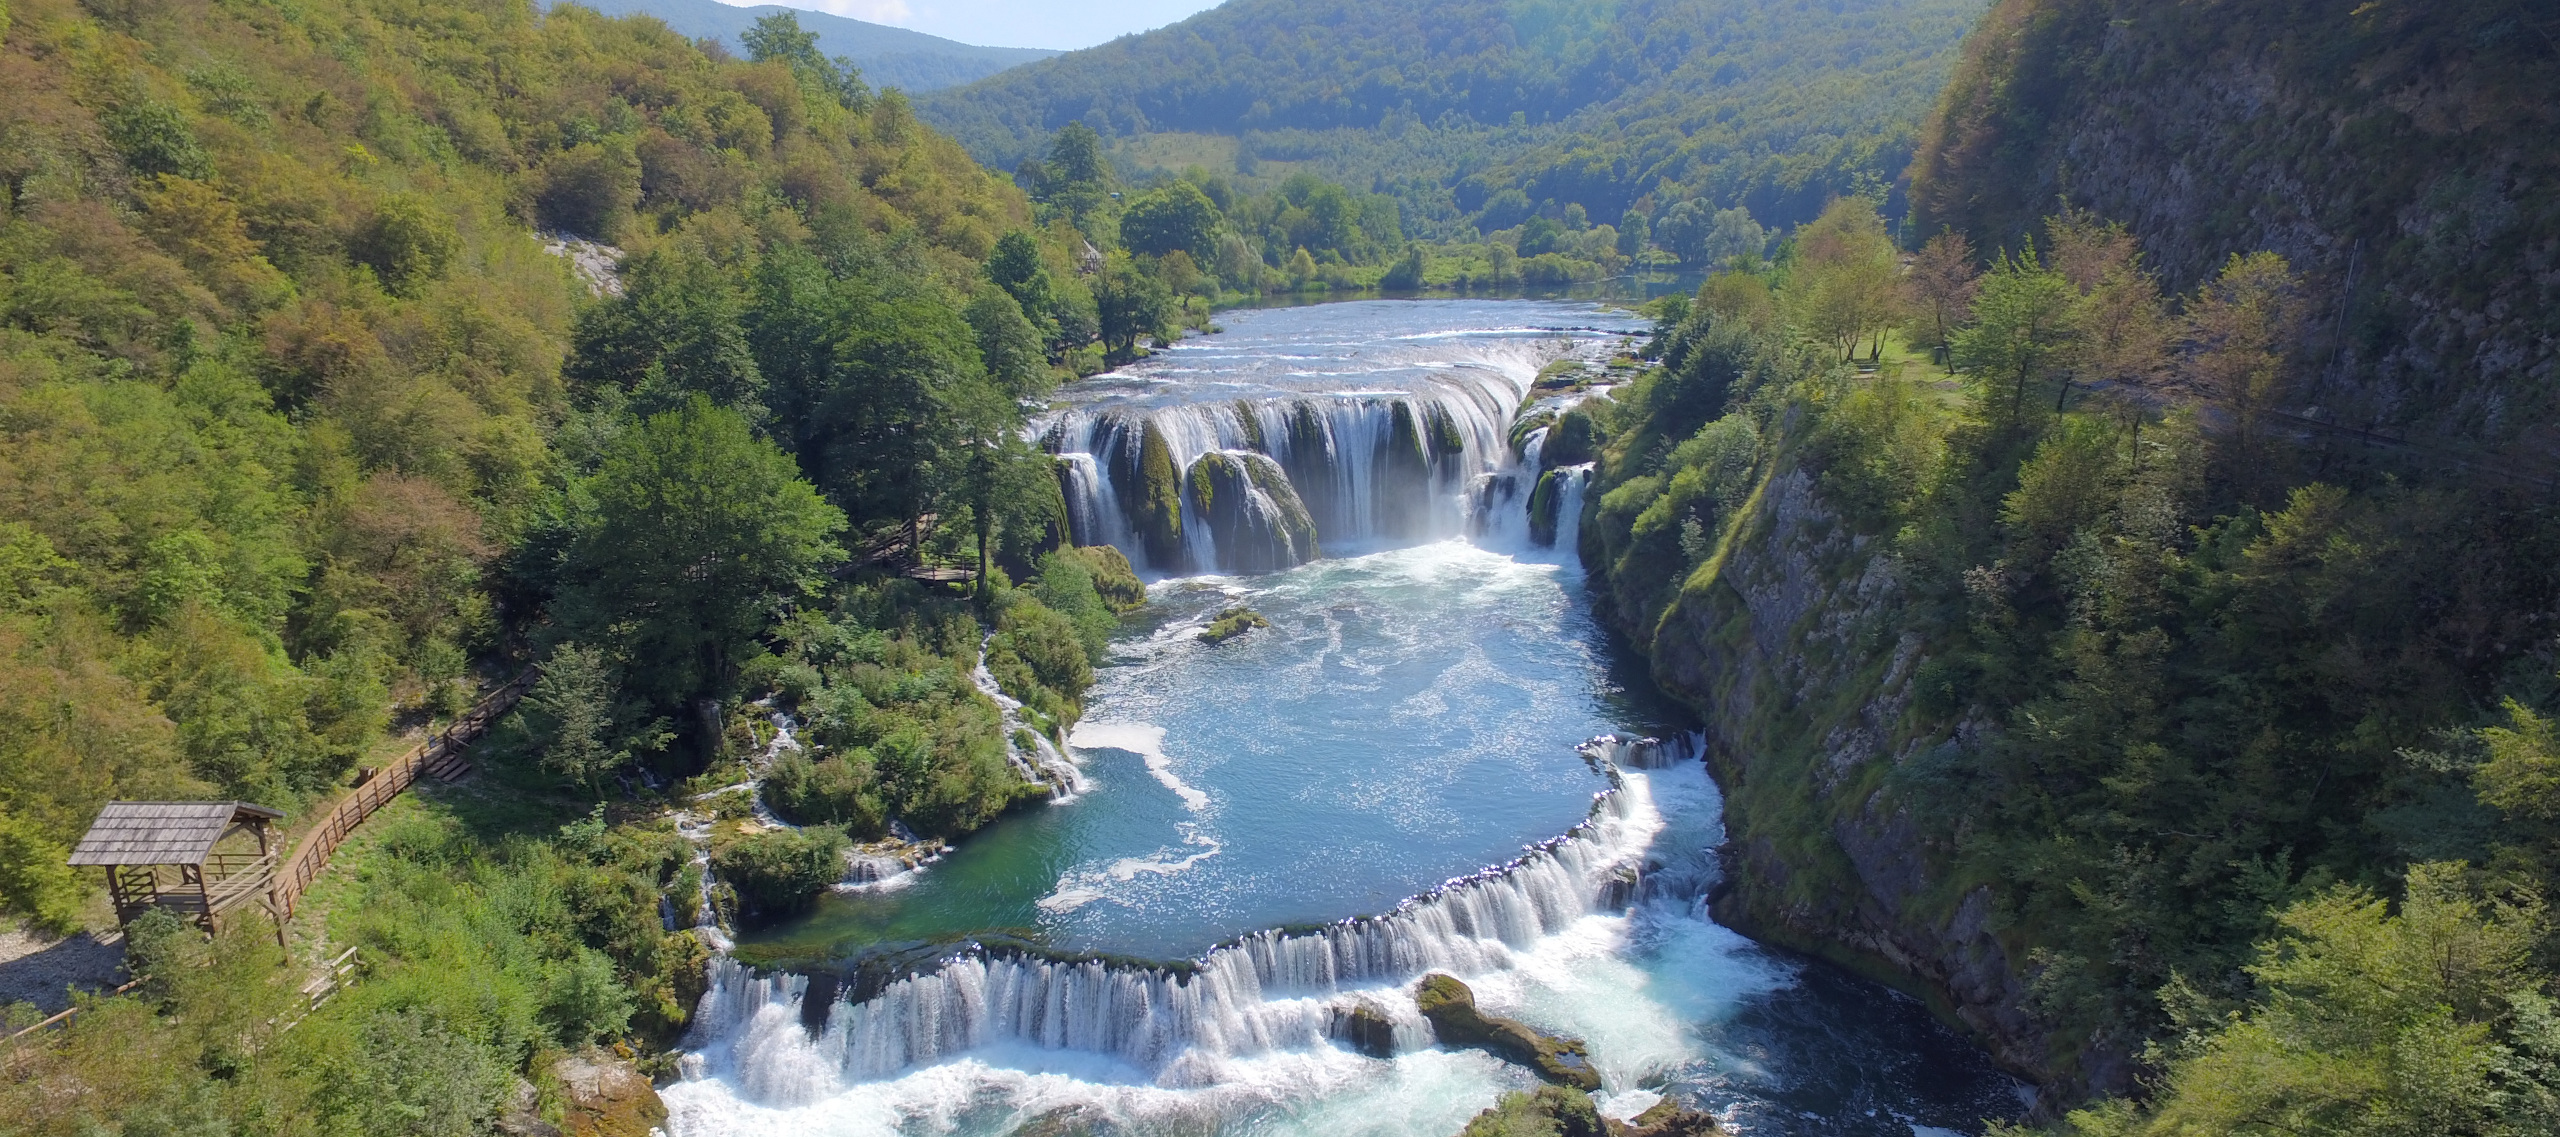 BOSNIA AND HERZEGOVINA: The Hidden Gem of the Balkan Region